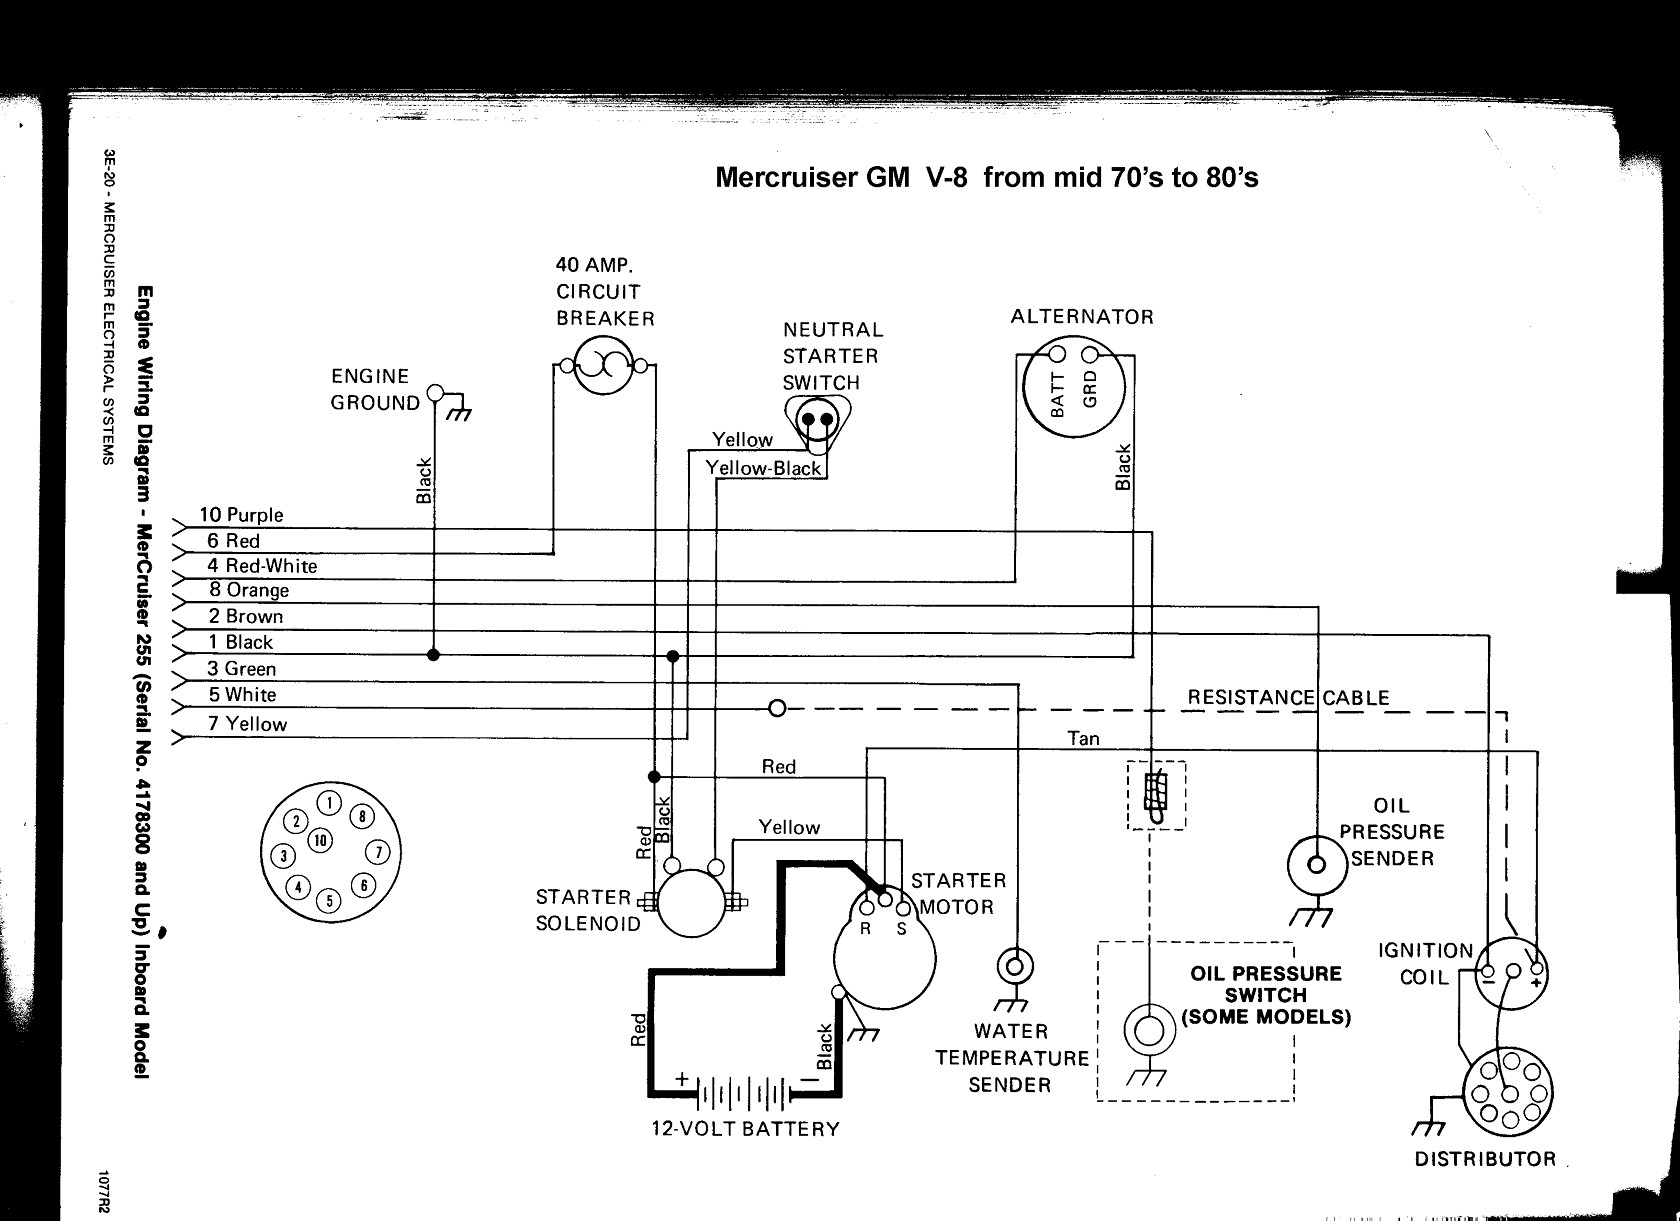 3 Liter Mercruiser Engine Diagram | Wiring Diagram on 3.7 mercruiser thermostat, 3.7 mercruiser voltage regulator, 3.7 mercruiser exhaust,